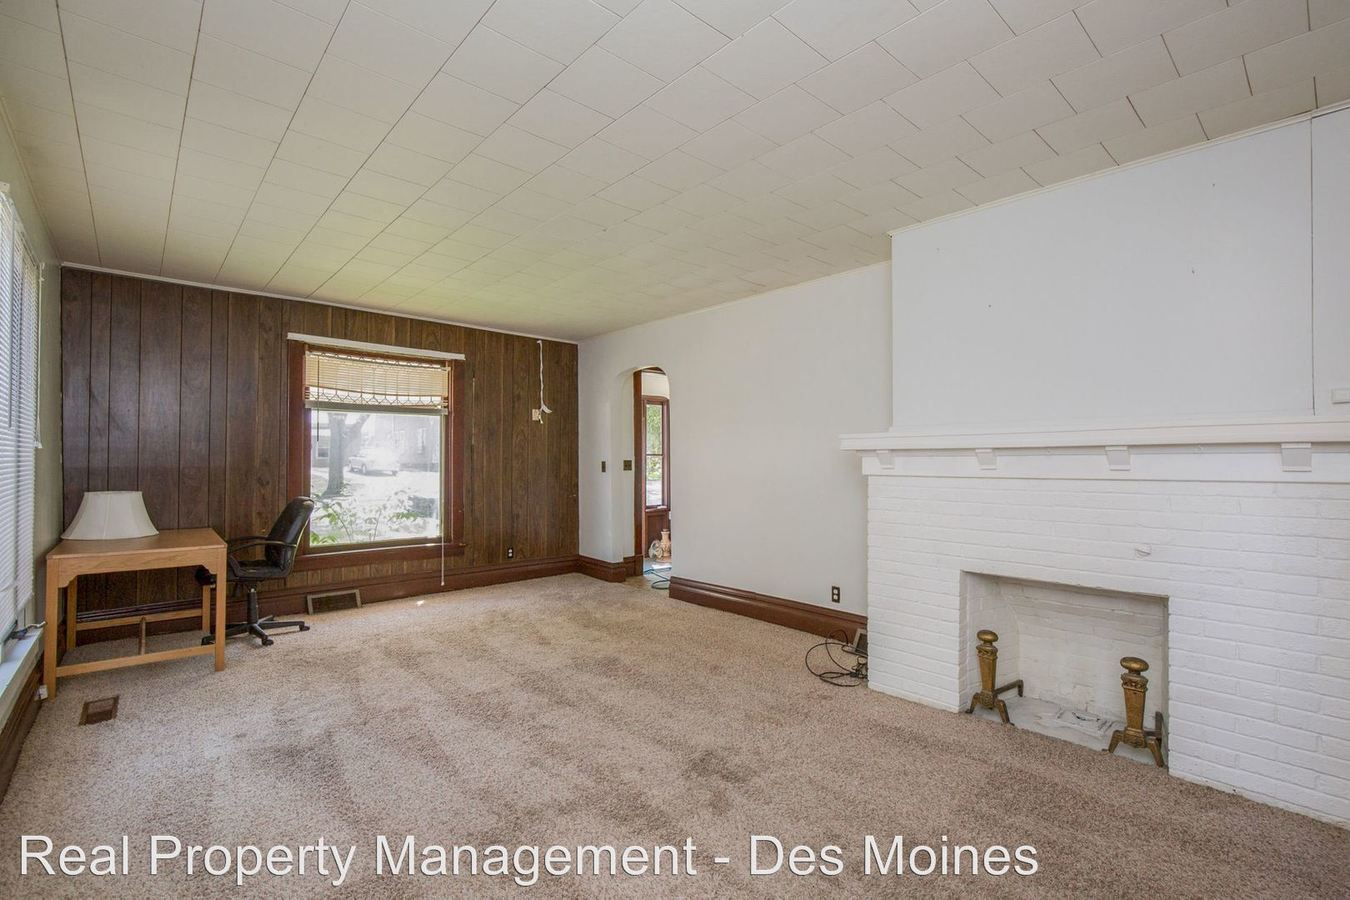 2 Bedrooms 1 Bathroom Apartment for rent at 415 Boone Street in Boone, IA